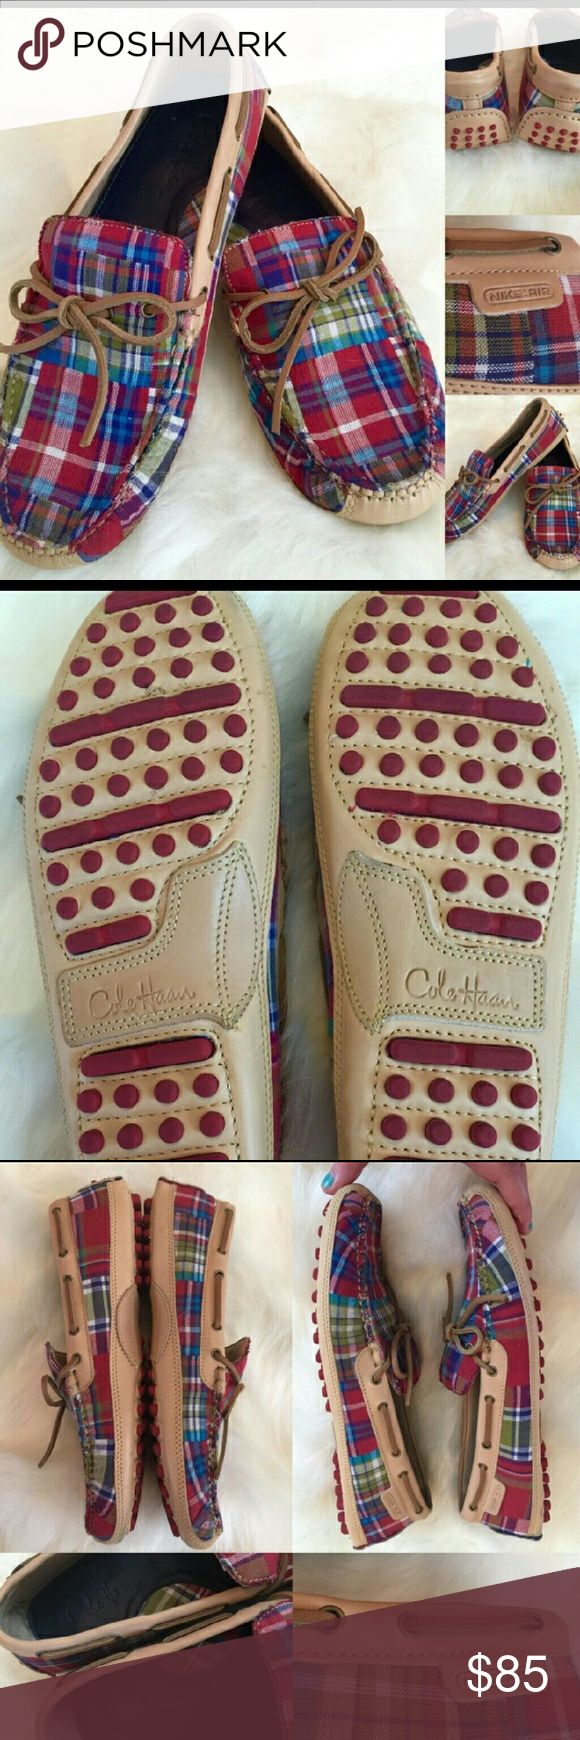 Cole Haan drivers Stylish, funky Cole Haan drivers with Nike Air soles. GUC lots of life left Cole Haan Shoes Loafers & Slip-Ons